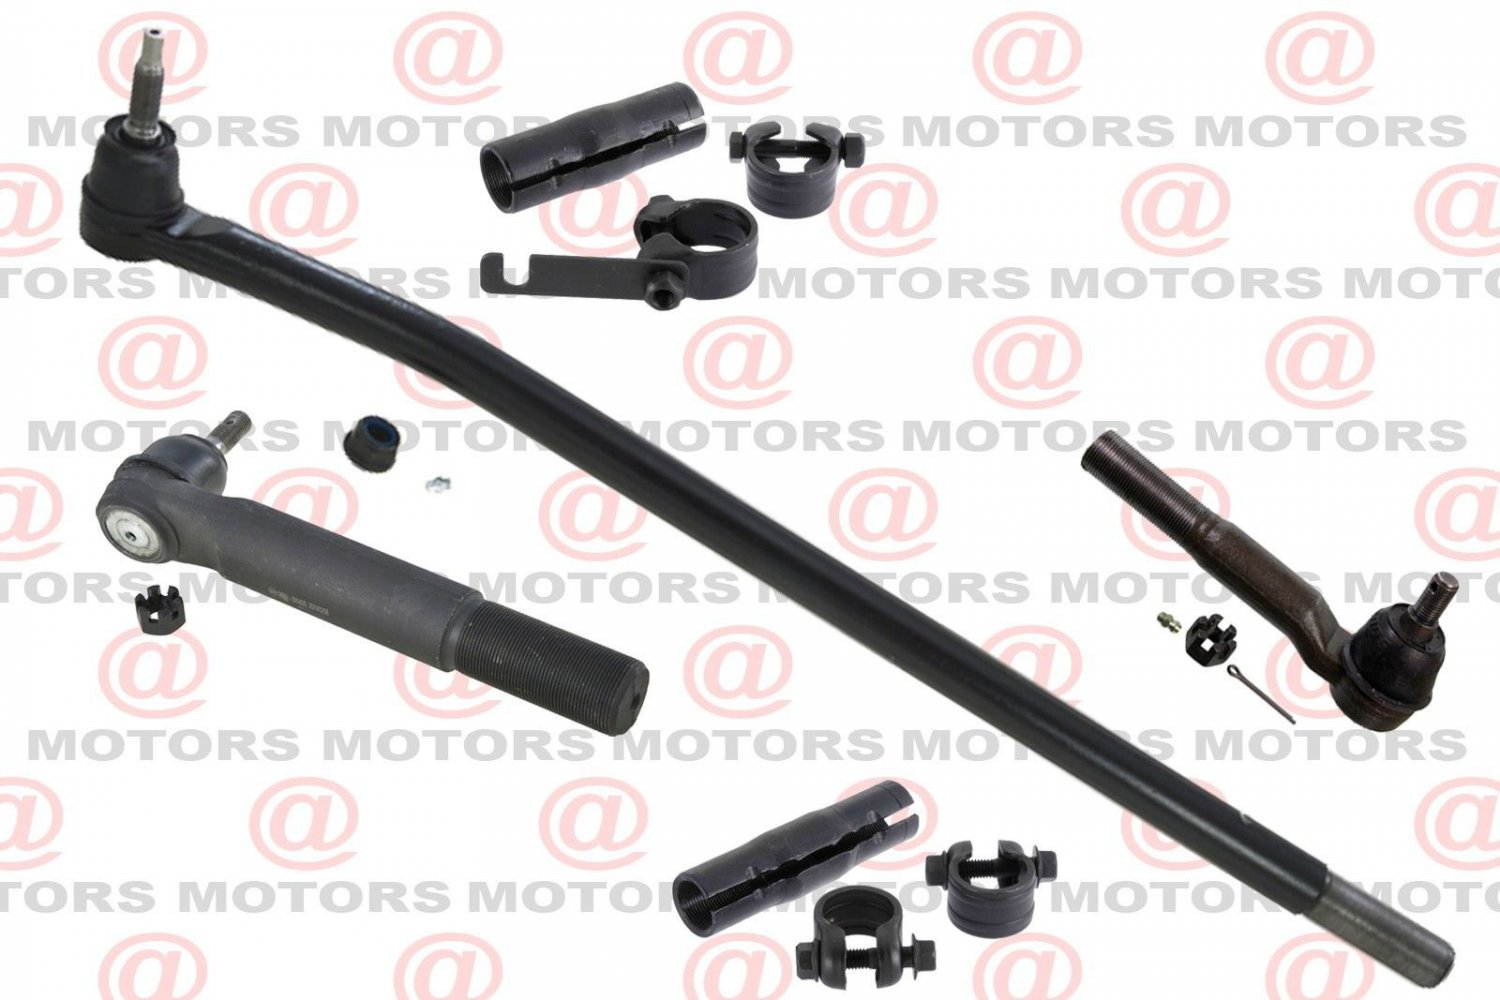 For Dodge Ram 2500 3500 4WD 2003-2010 Outer Inner Tie Rods Steering